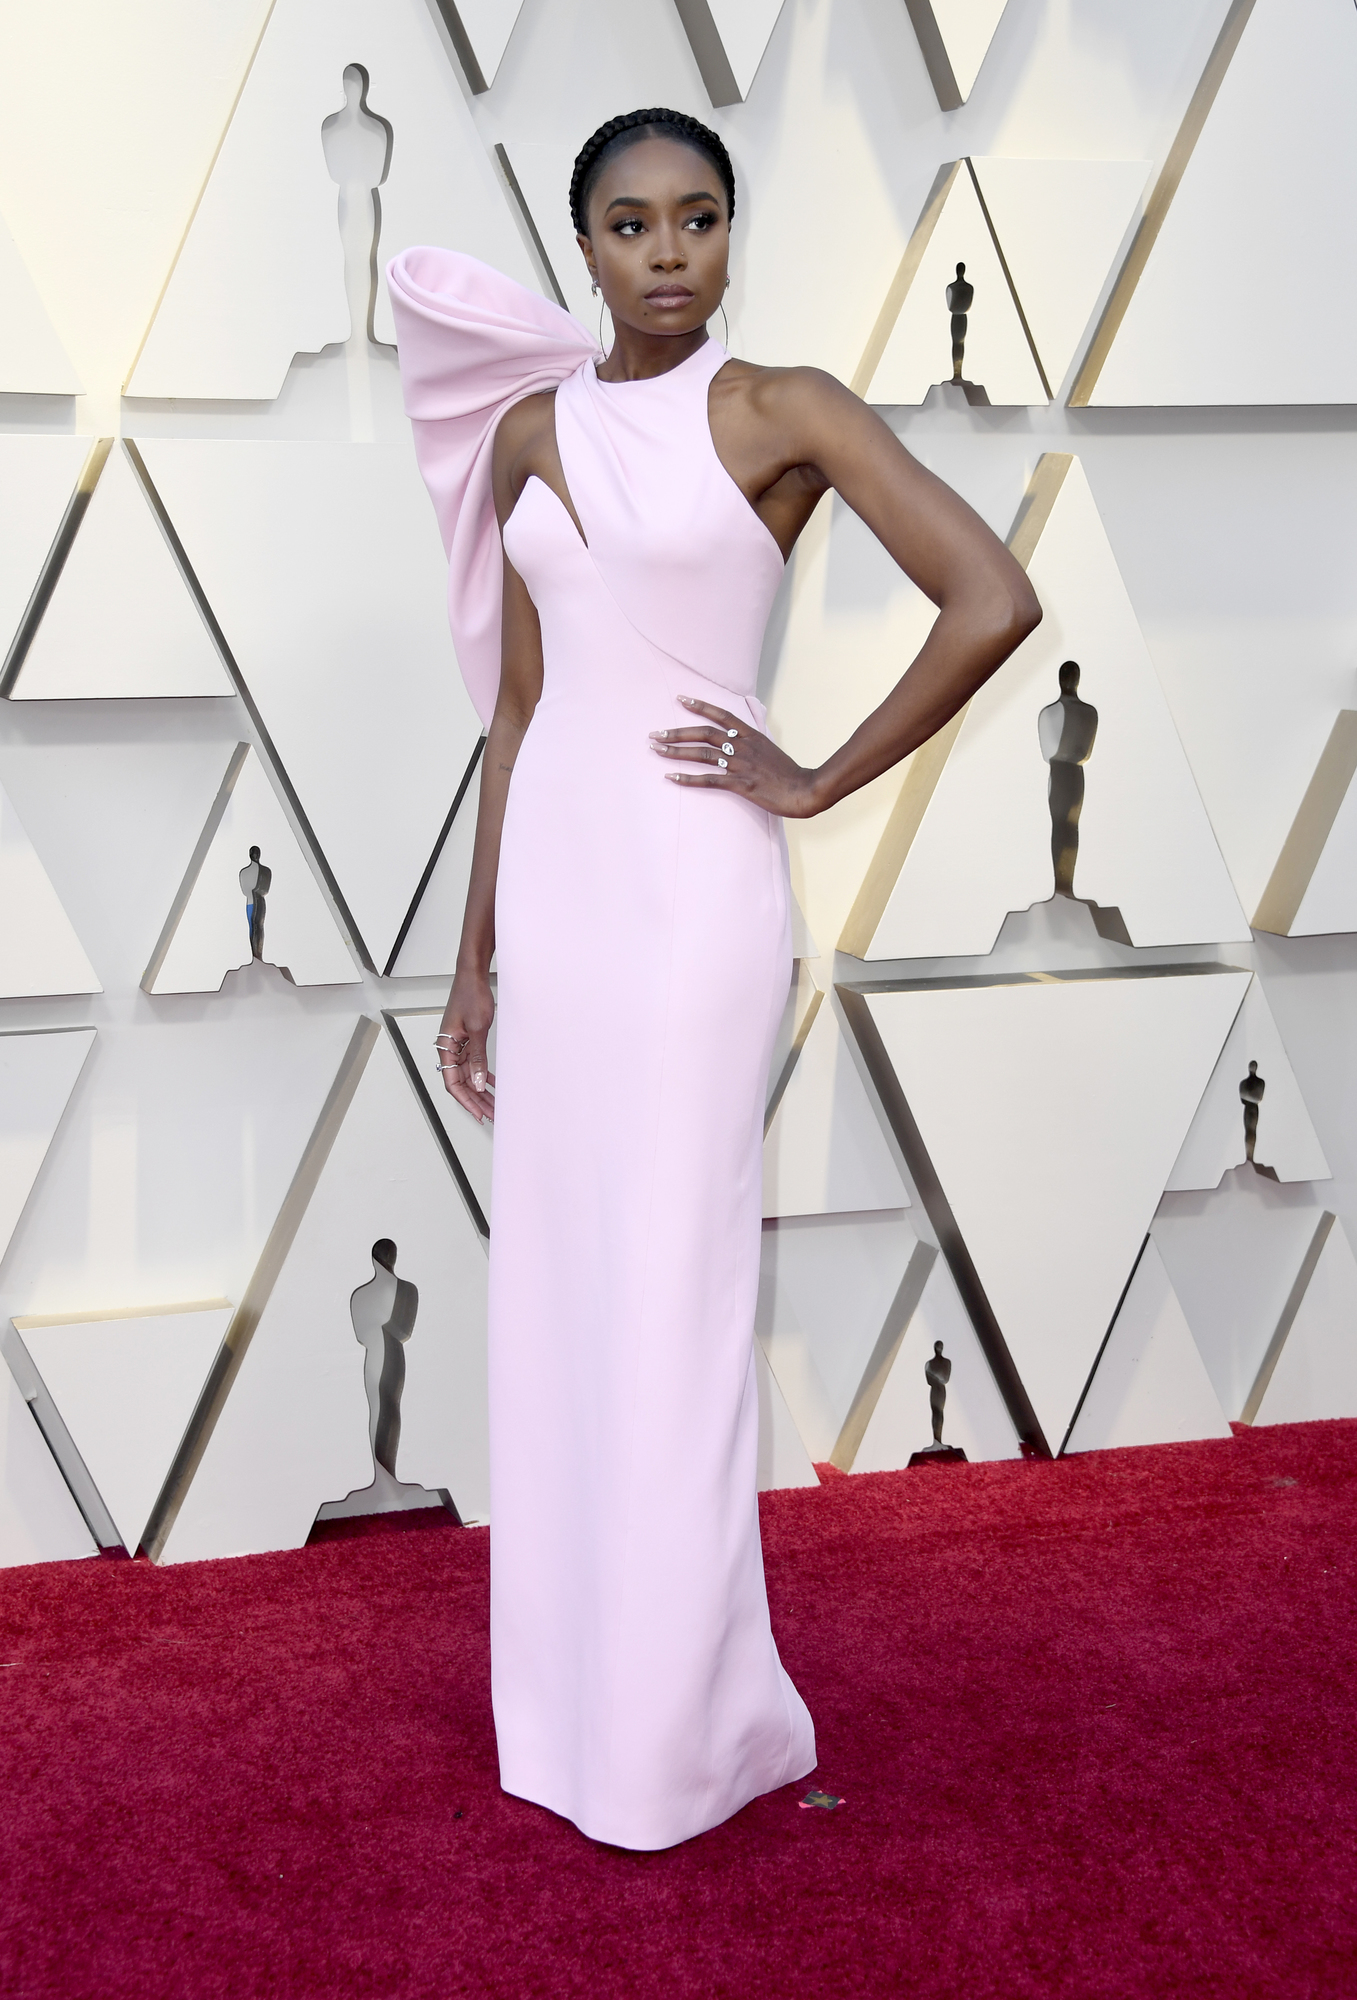 HOLLYWOOD, CALIFORNIA - FEBRUARY 24: KiKi Layne attends the 91st Annual Academy Awards at Hollywood and Highland on February 24, 2019 in Hollywood, California. (Photo by Frazer Harrison/Getty Images)